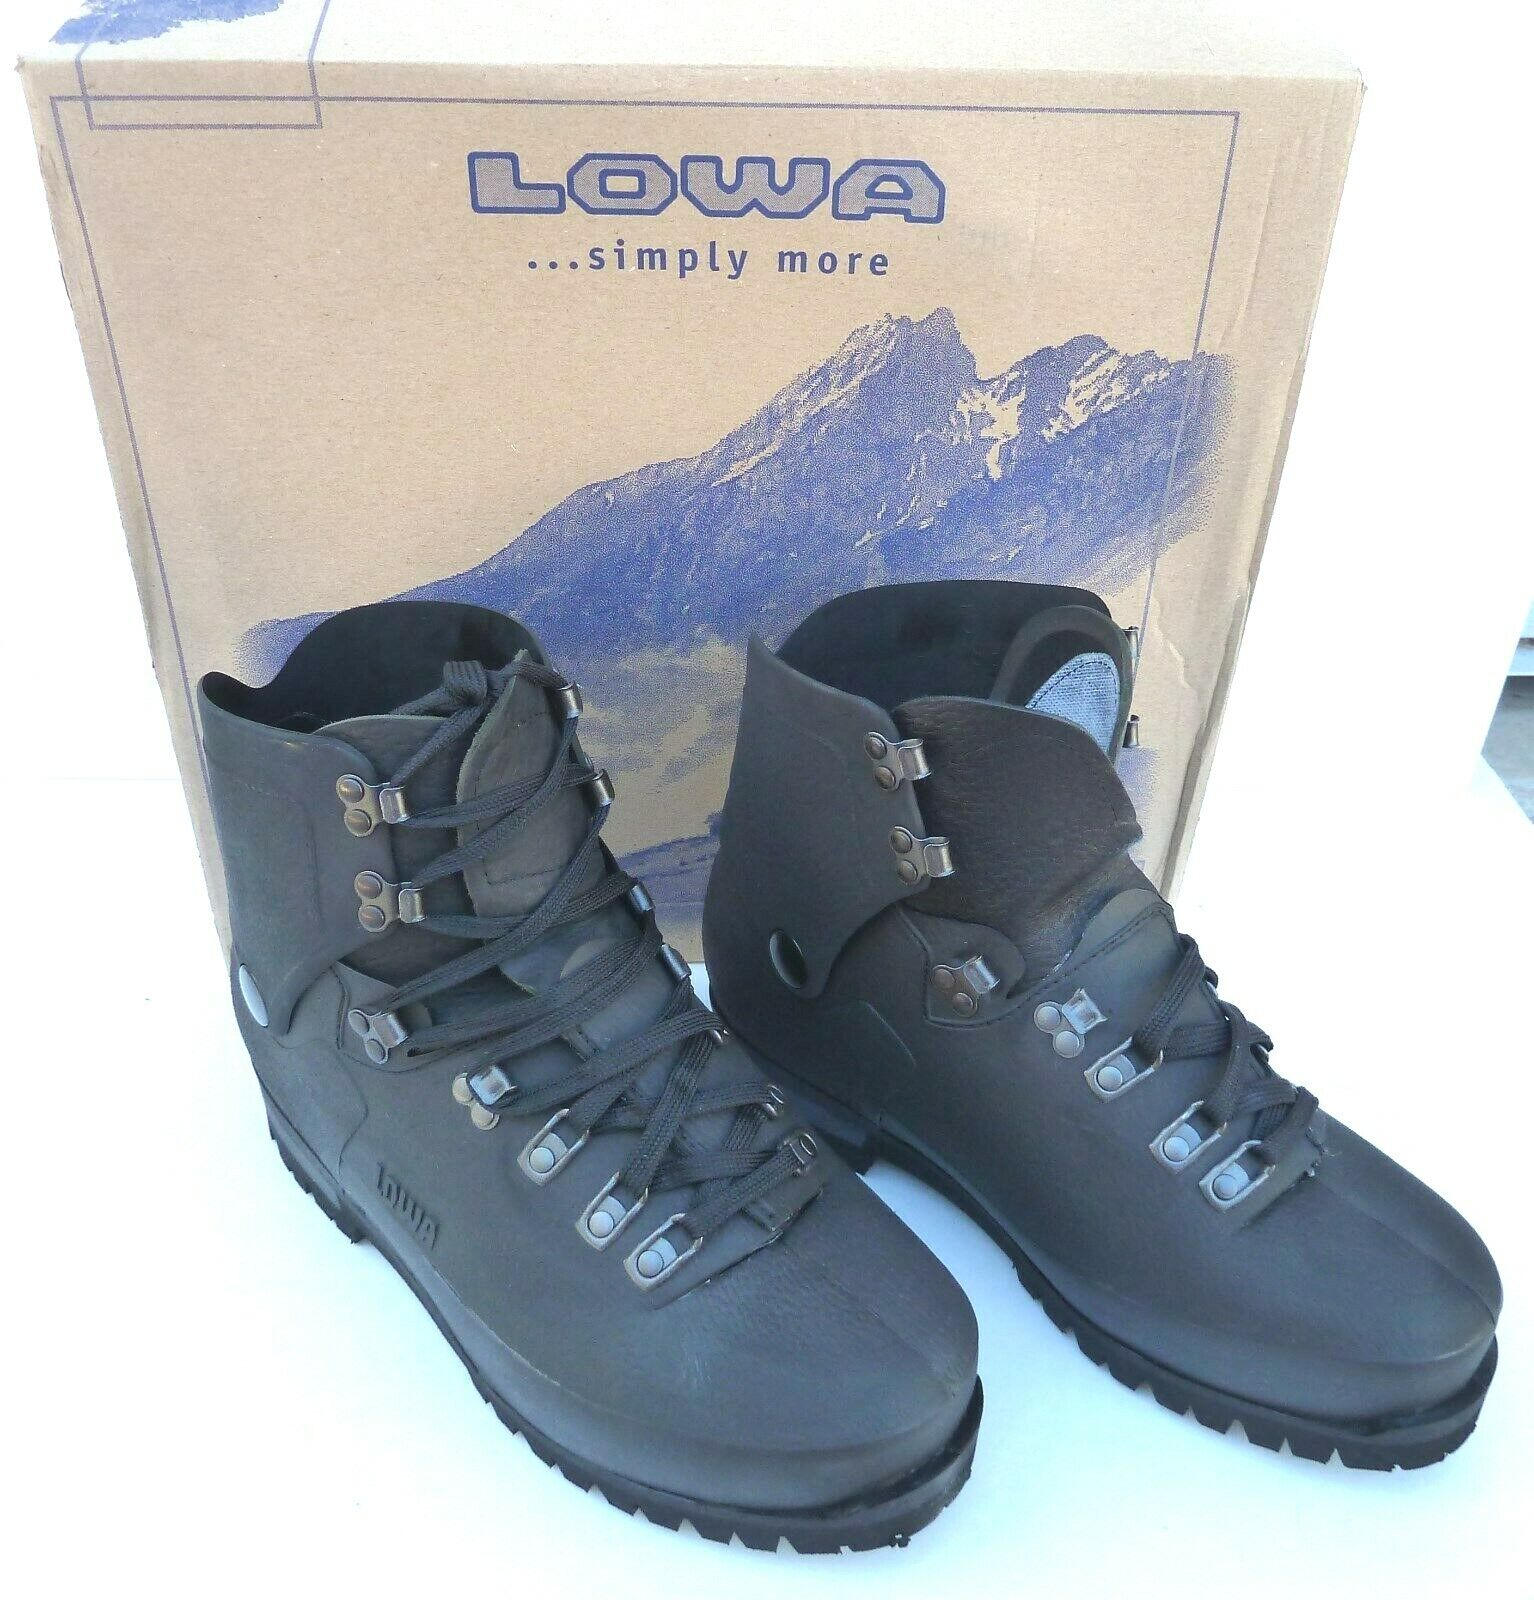 LOWA CIVETTA EXTREME COLD MOUNTAIN,  ICE CLIMBING  BOOTS SIZE  9   NEW  for your style of play at the cheapest prices